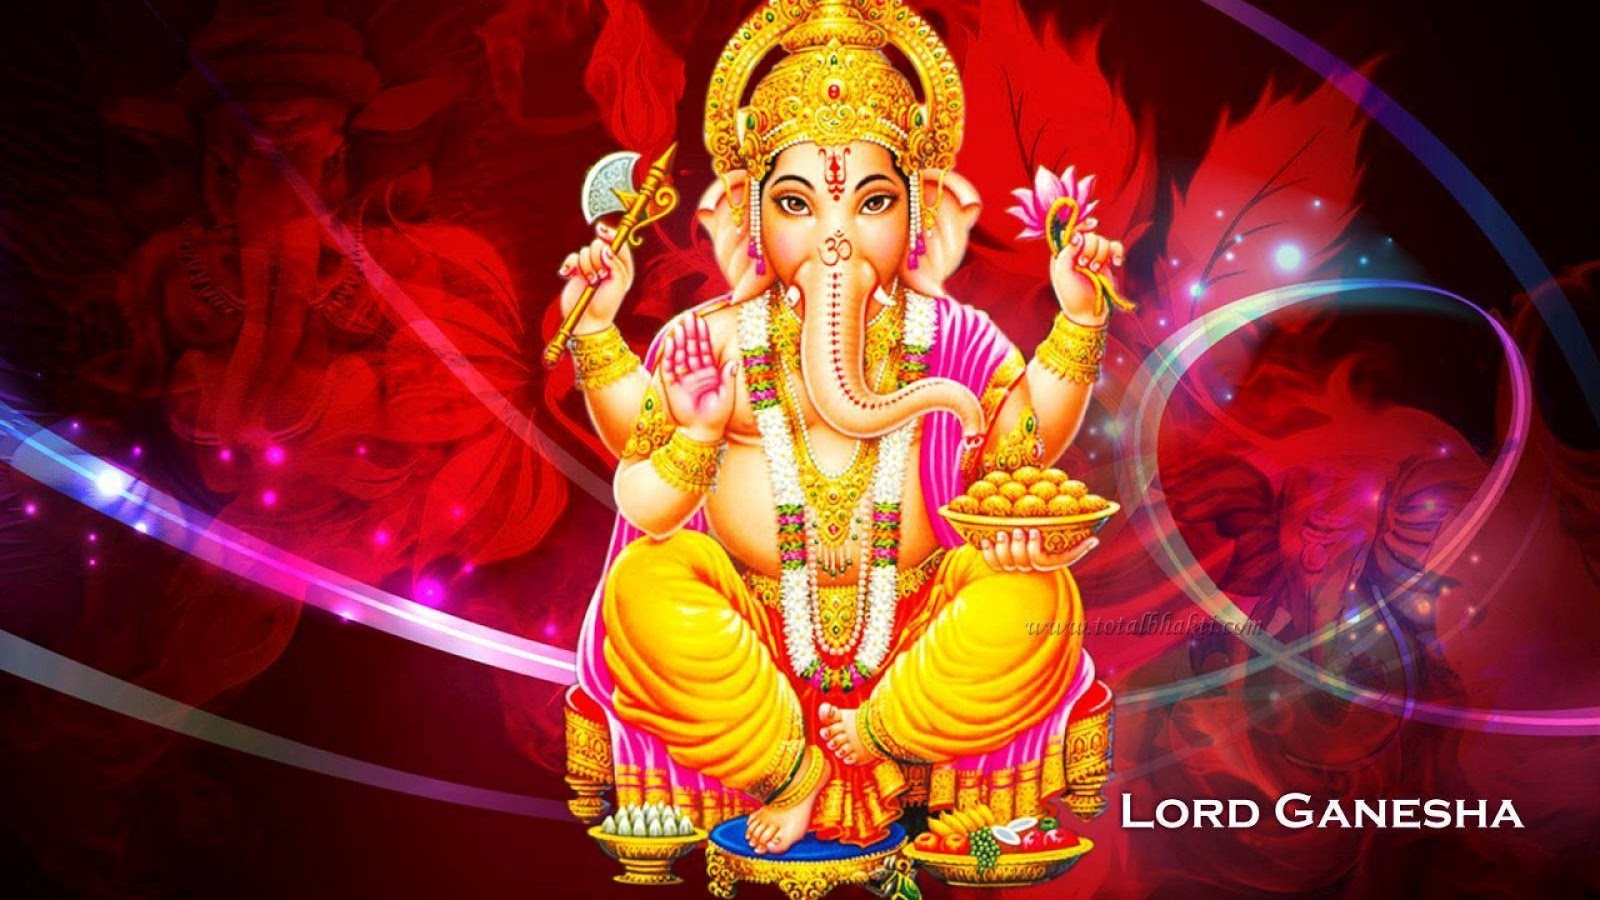 50 lord ganesha wallpapers images photo in hd